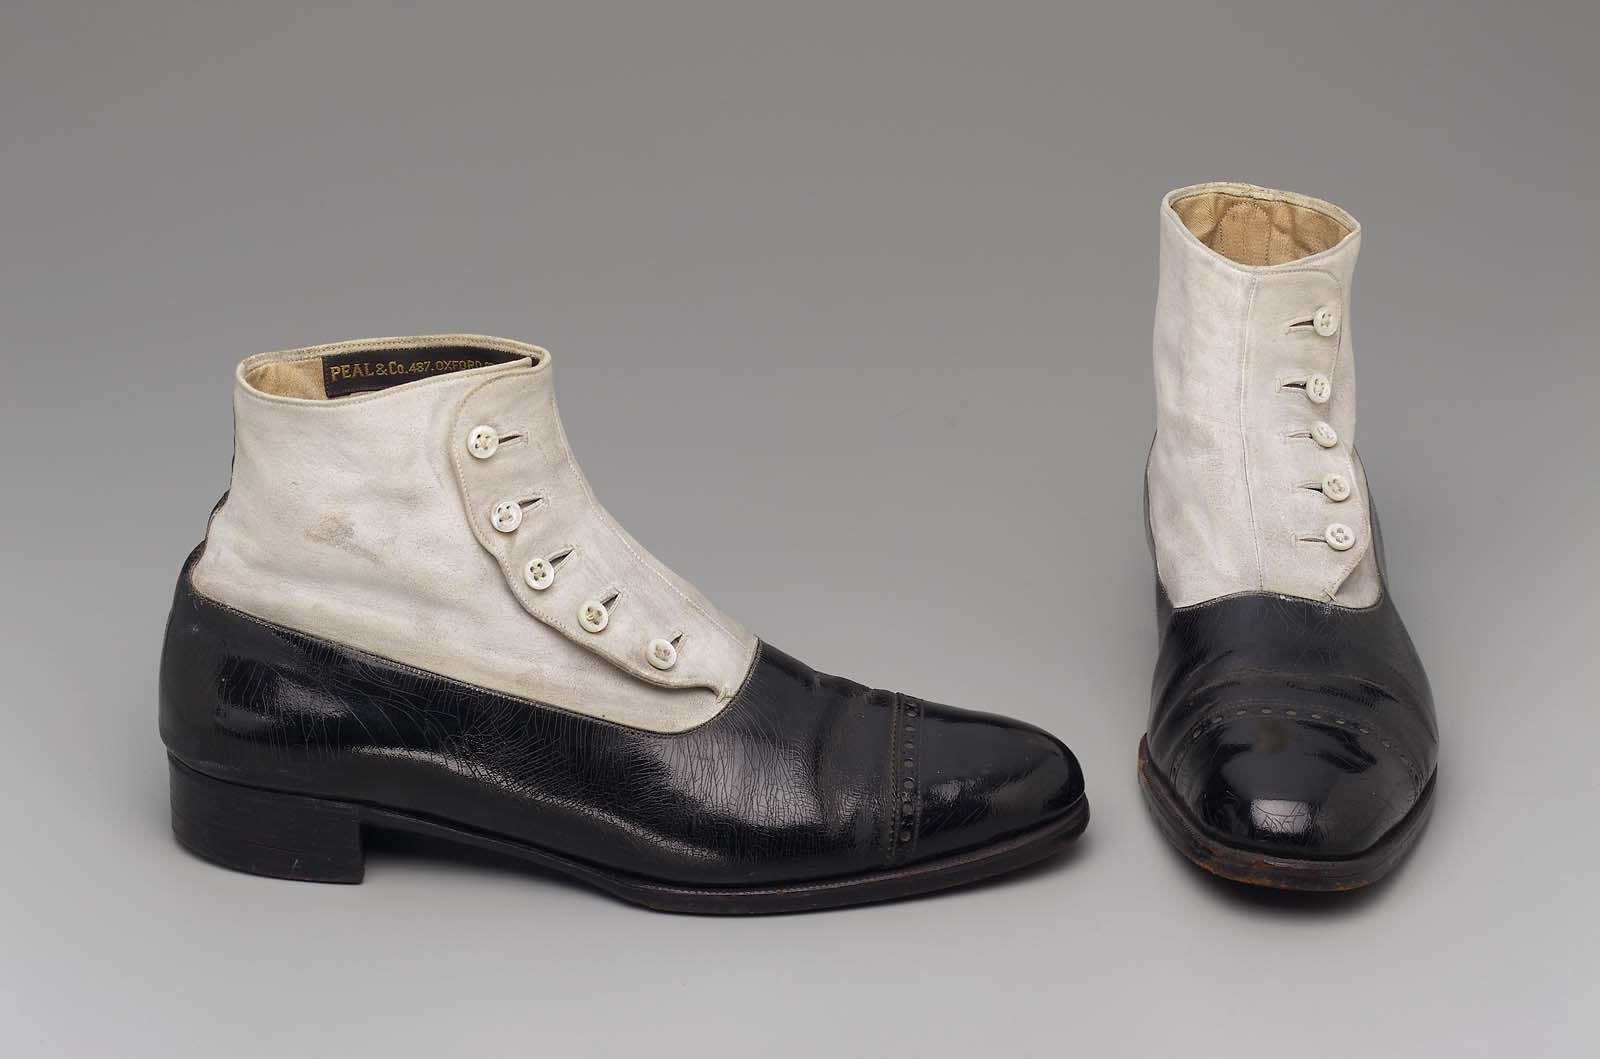 1920 1940, England Pair of men's boots Patent leather